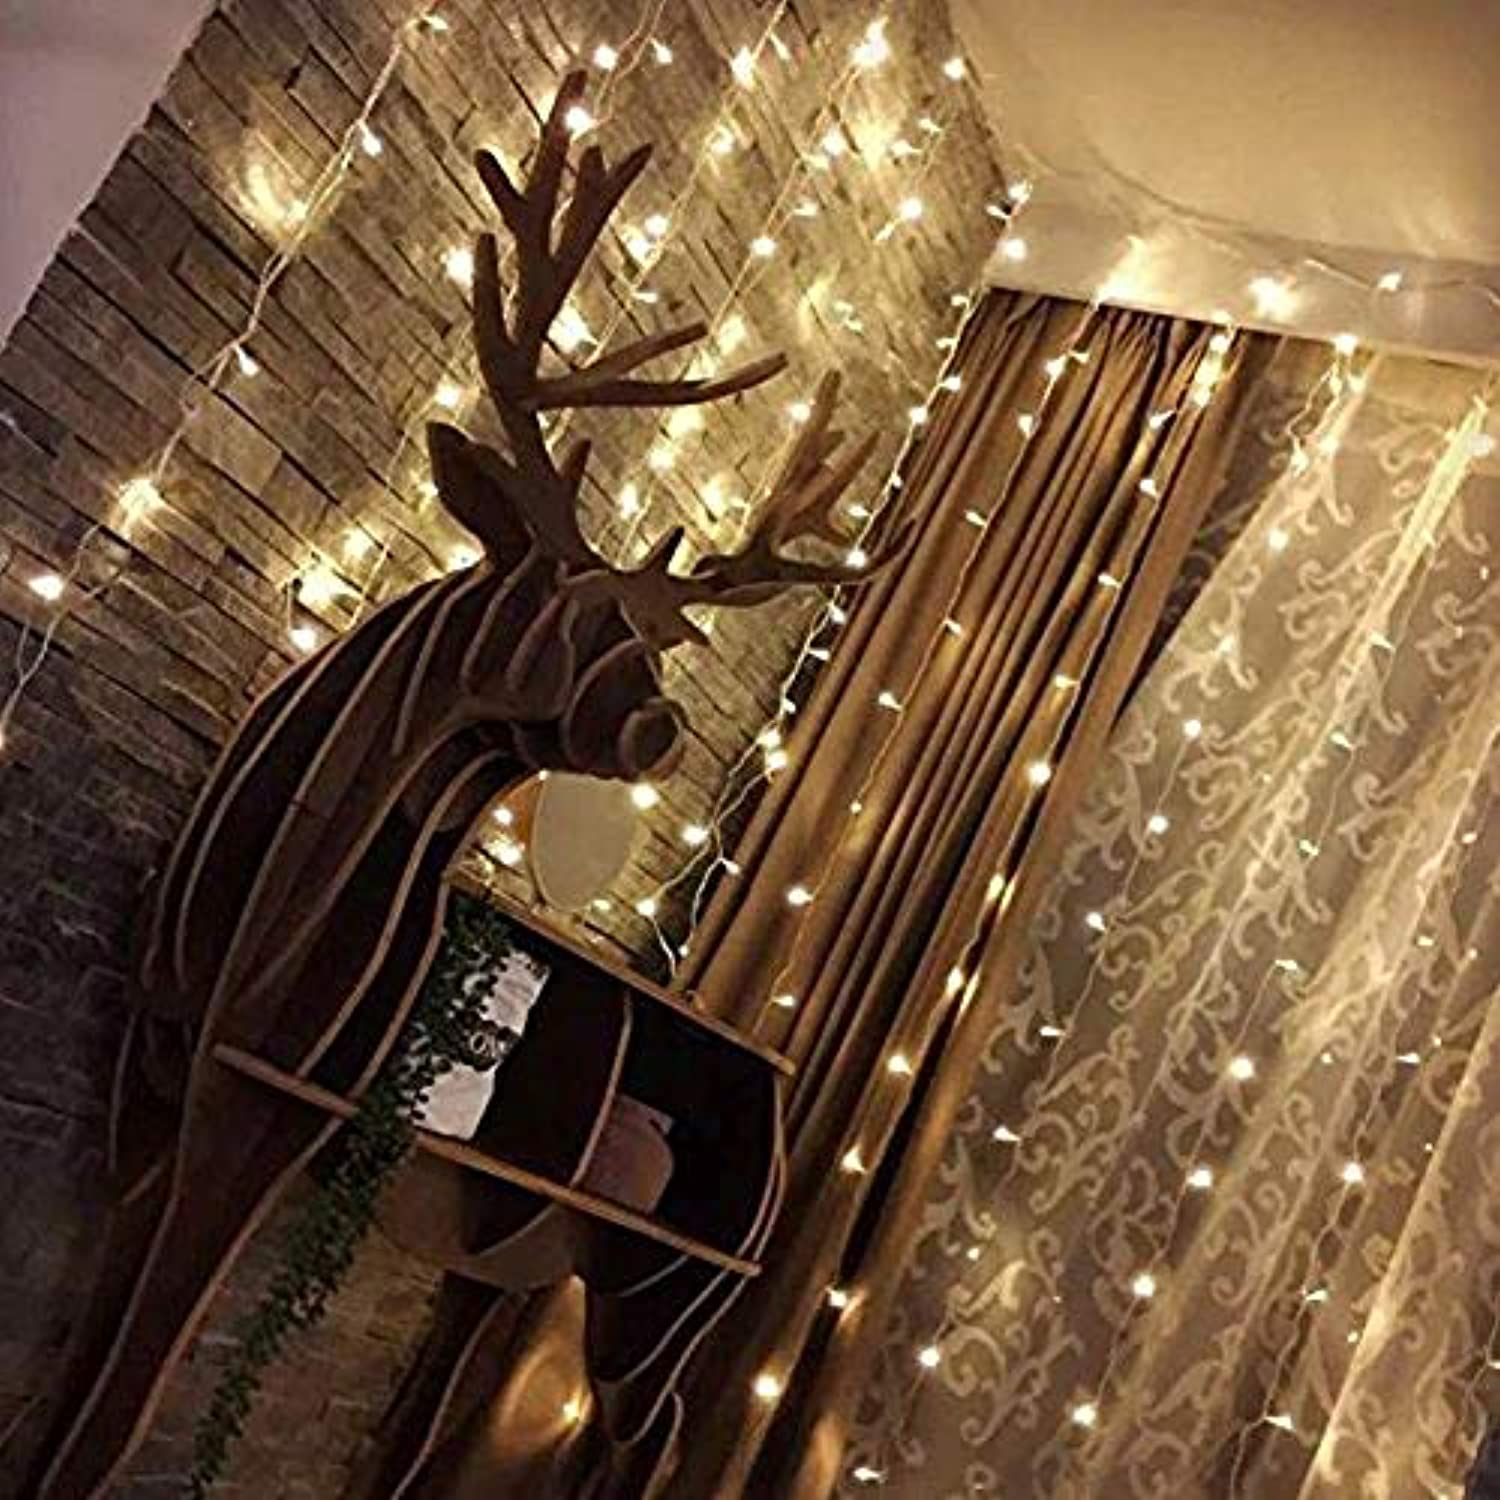 Classier: Buy Twinkle Star Twinkle Star 300 LED Window Curtain String Light Wedding Party Home Garden Bedroom Outdoor Indoor Wall Decorations, Warm White